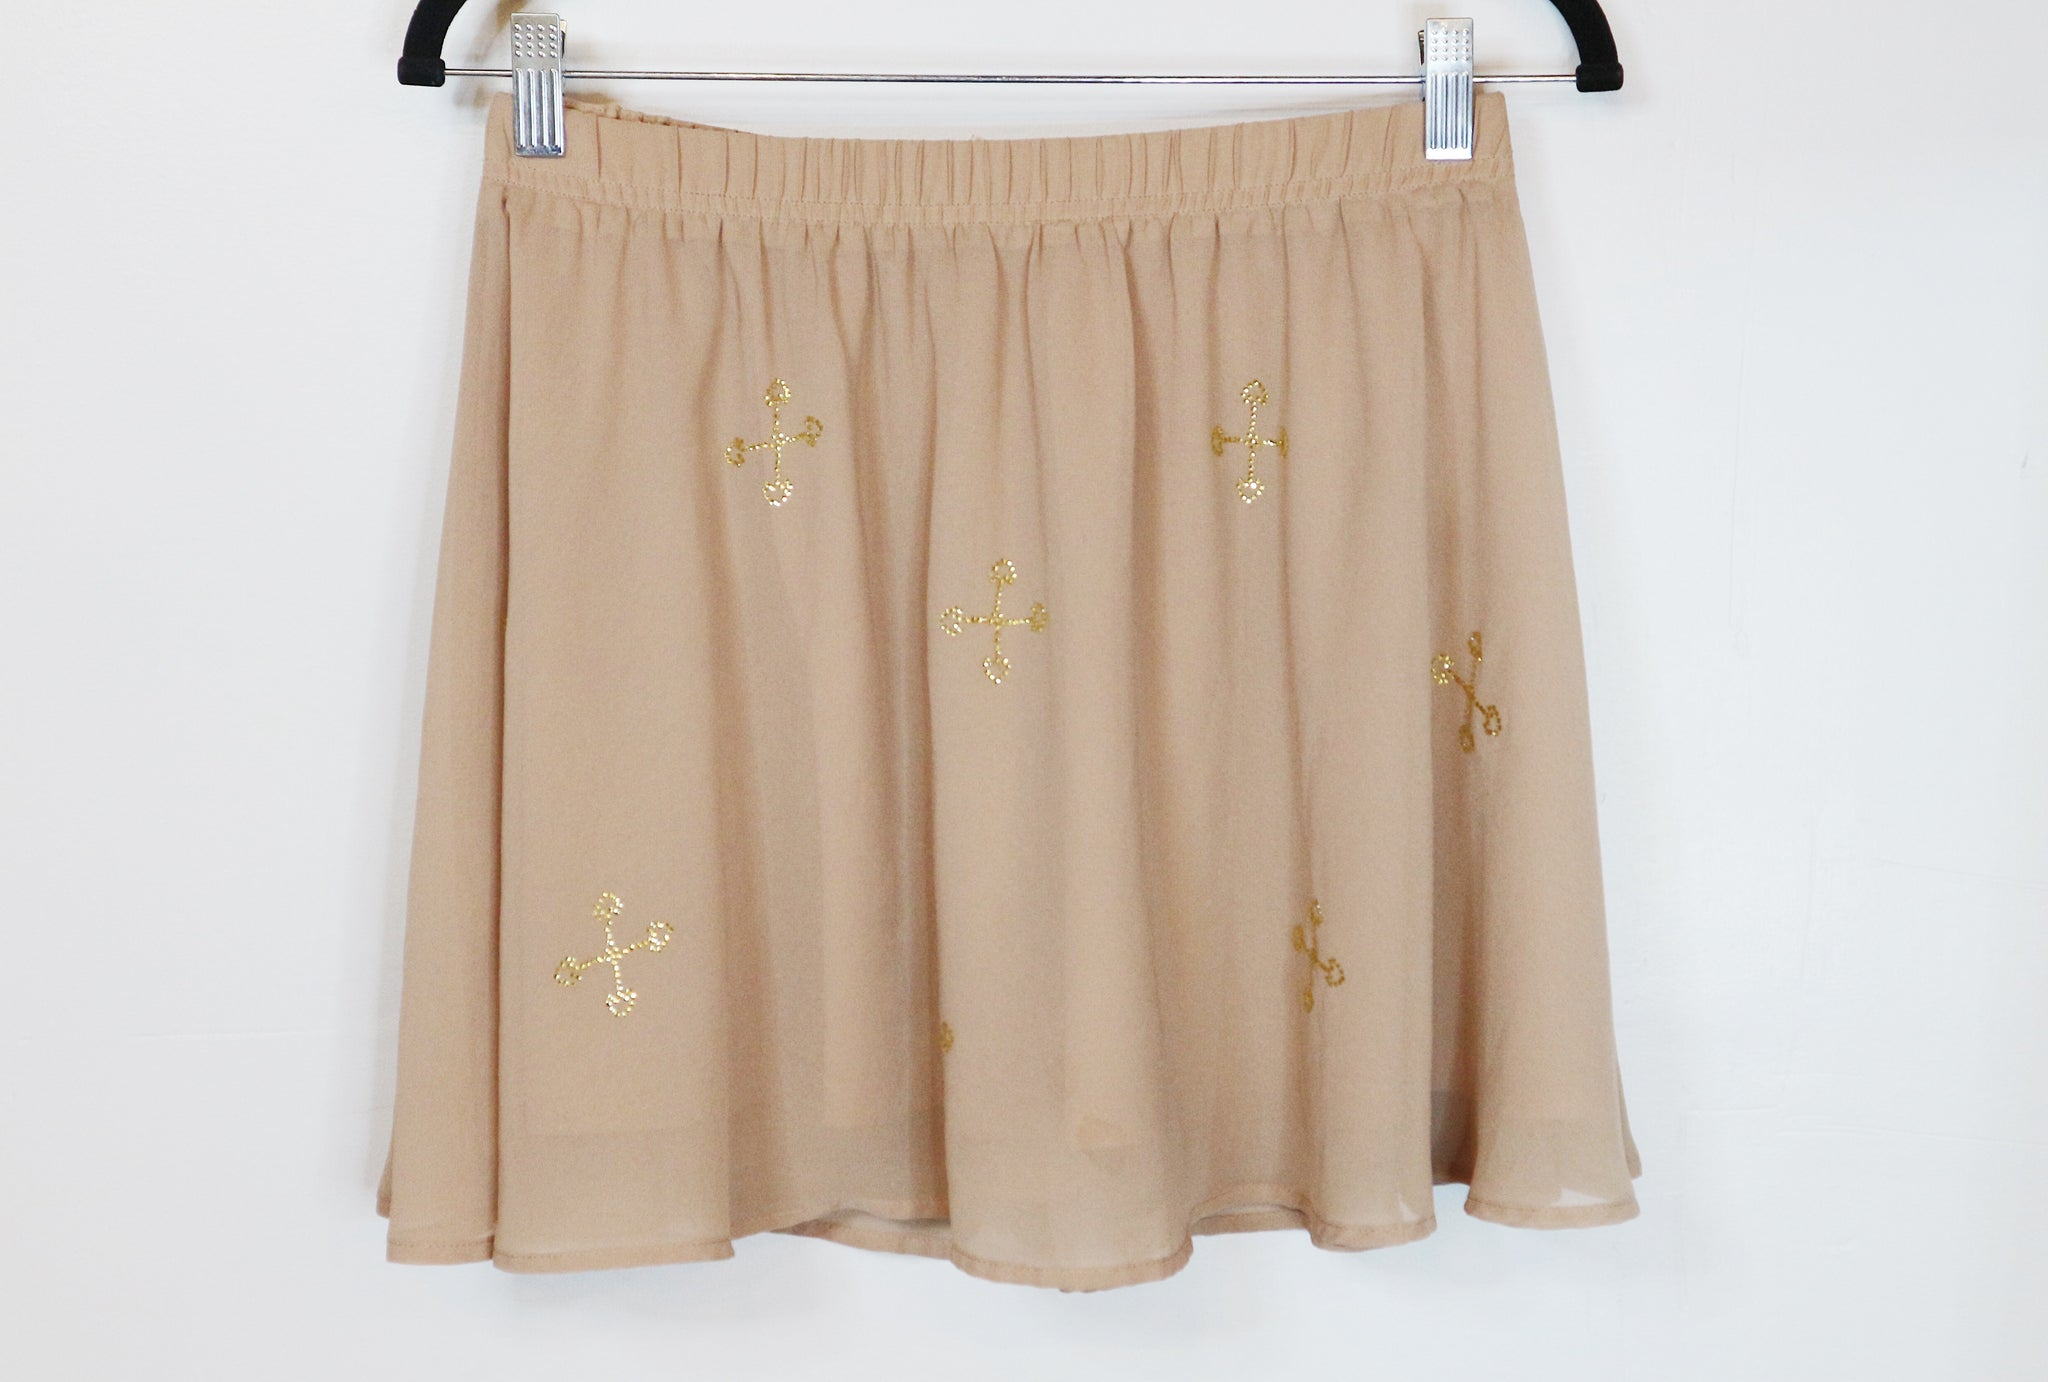 H&M Chiffon Skirt with Gold Rhinestones